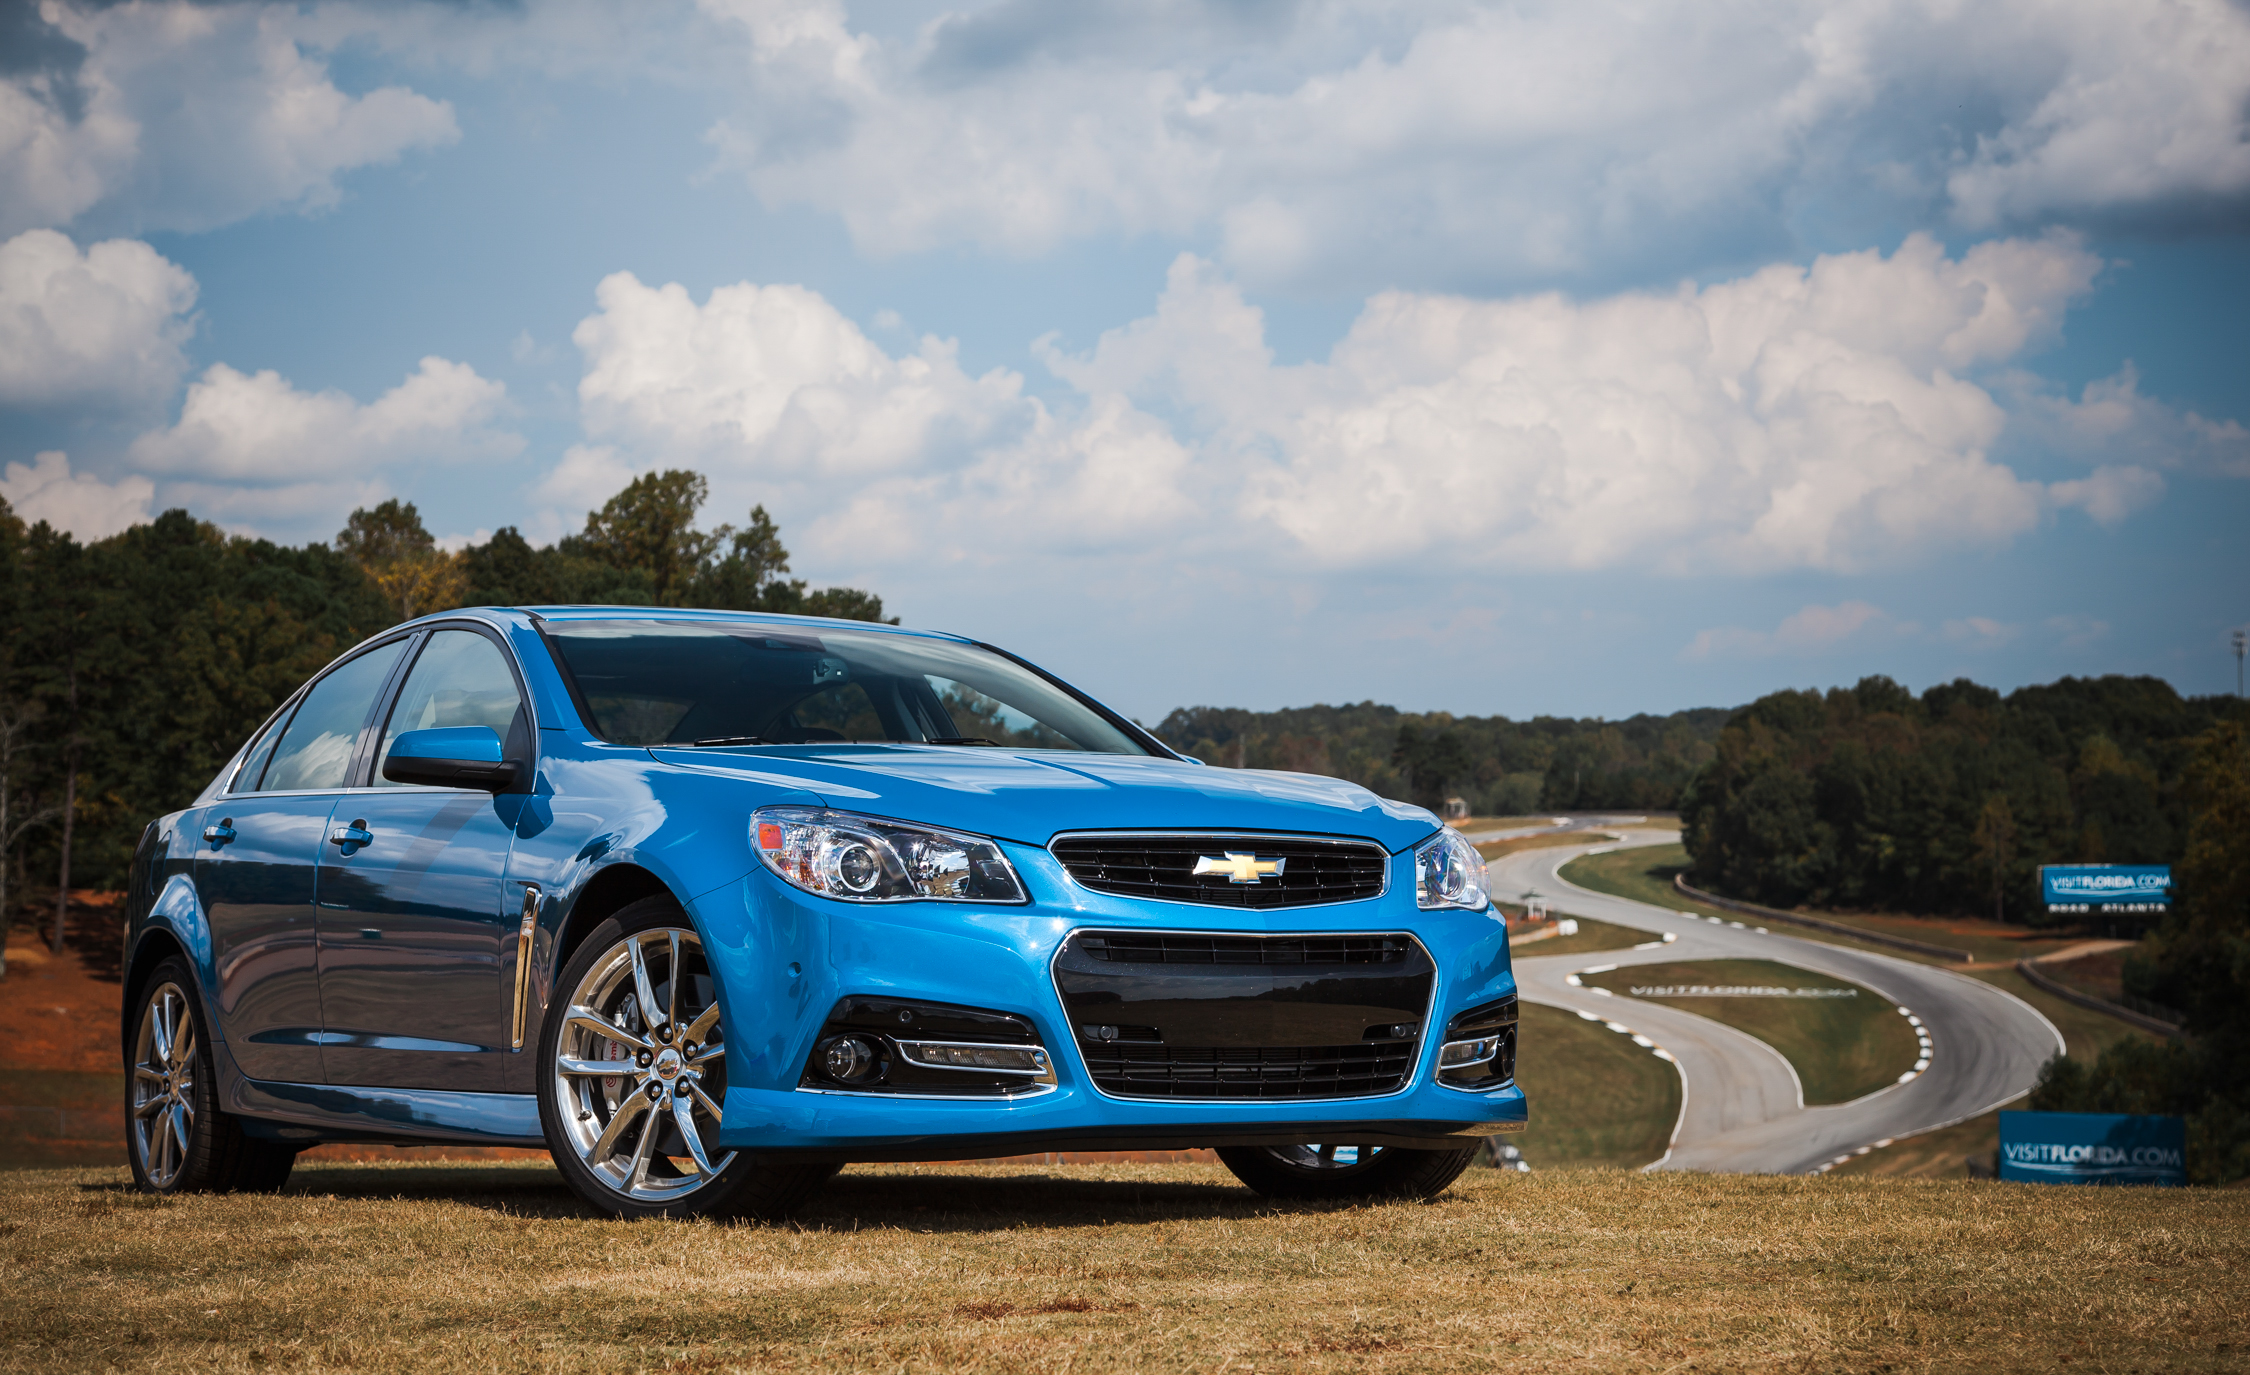 2015 Chevrolet SS (View 22 of 27)